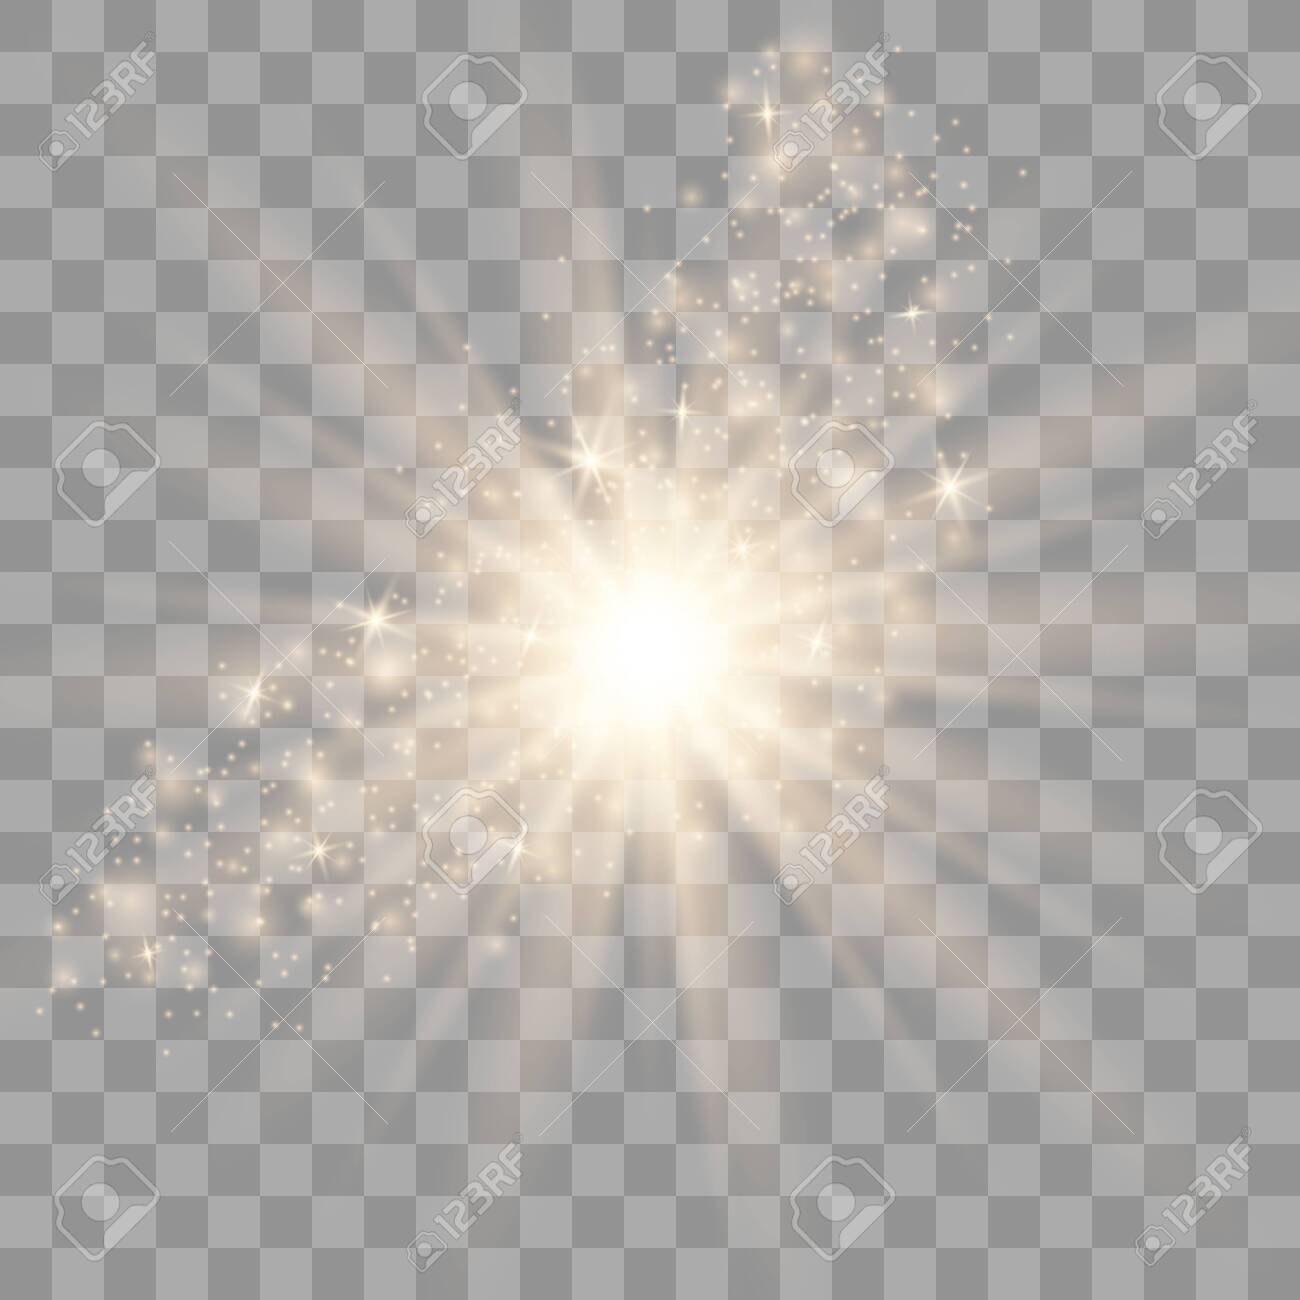 Glow light effect. Star burst with sparkles. Special effect isolated on transparent background. - 128274521